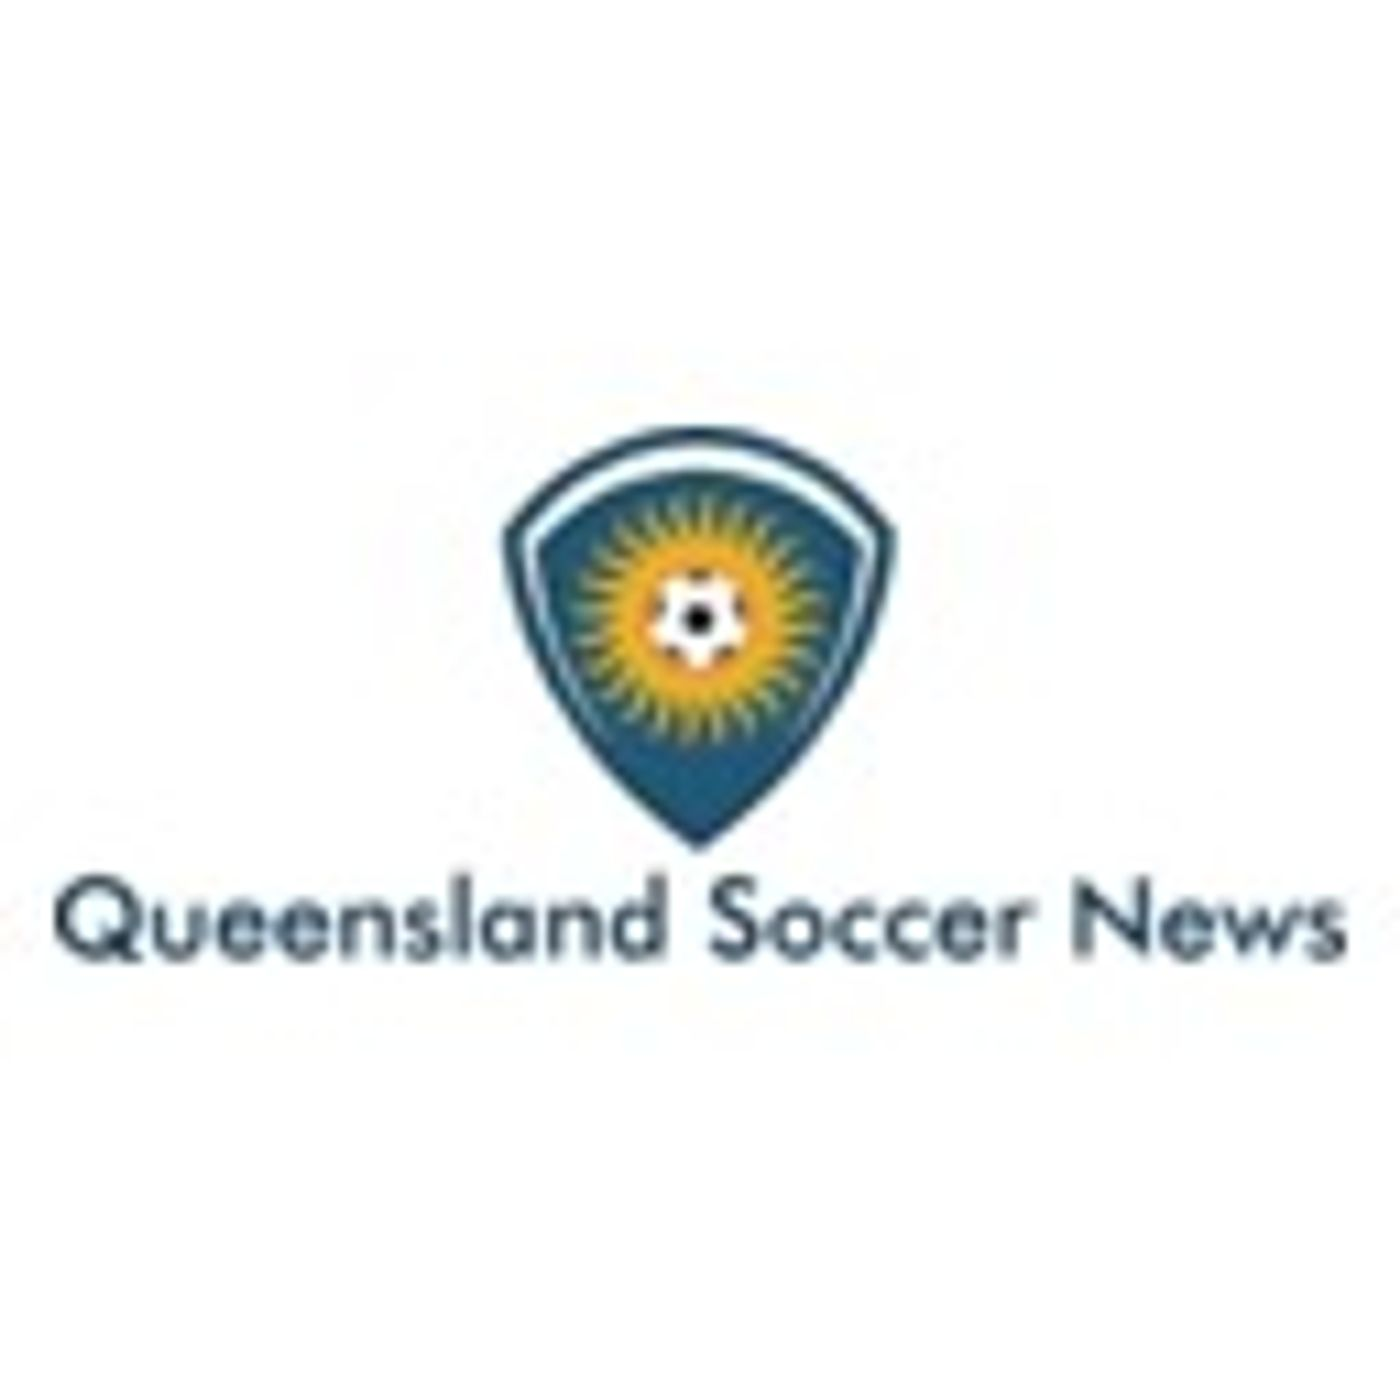 Queensland Soccer News